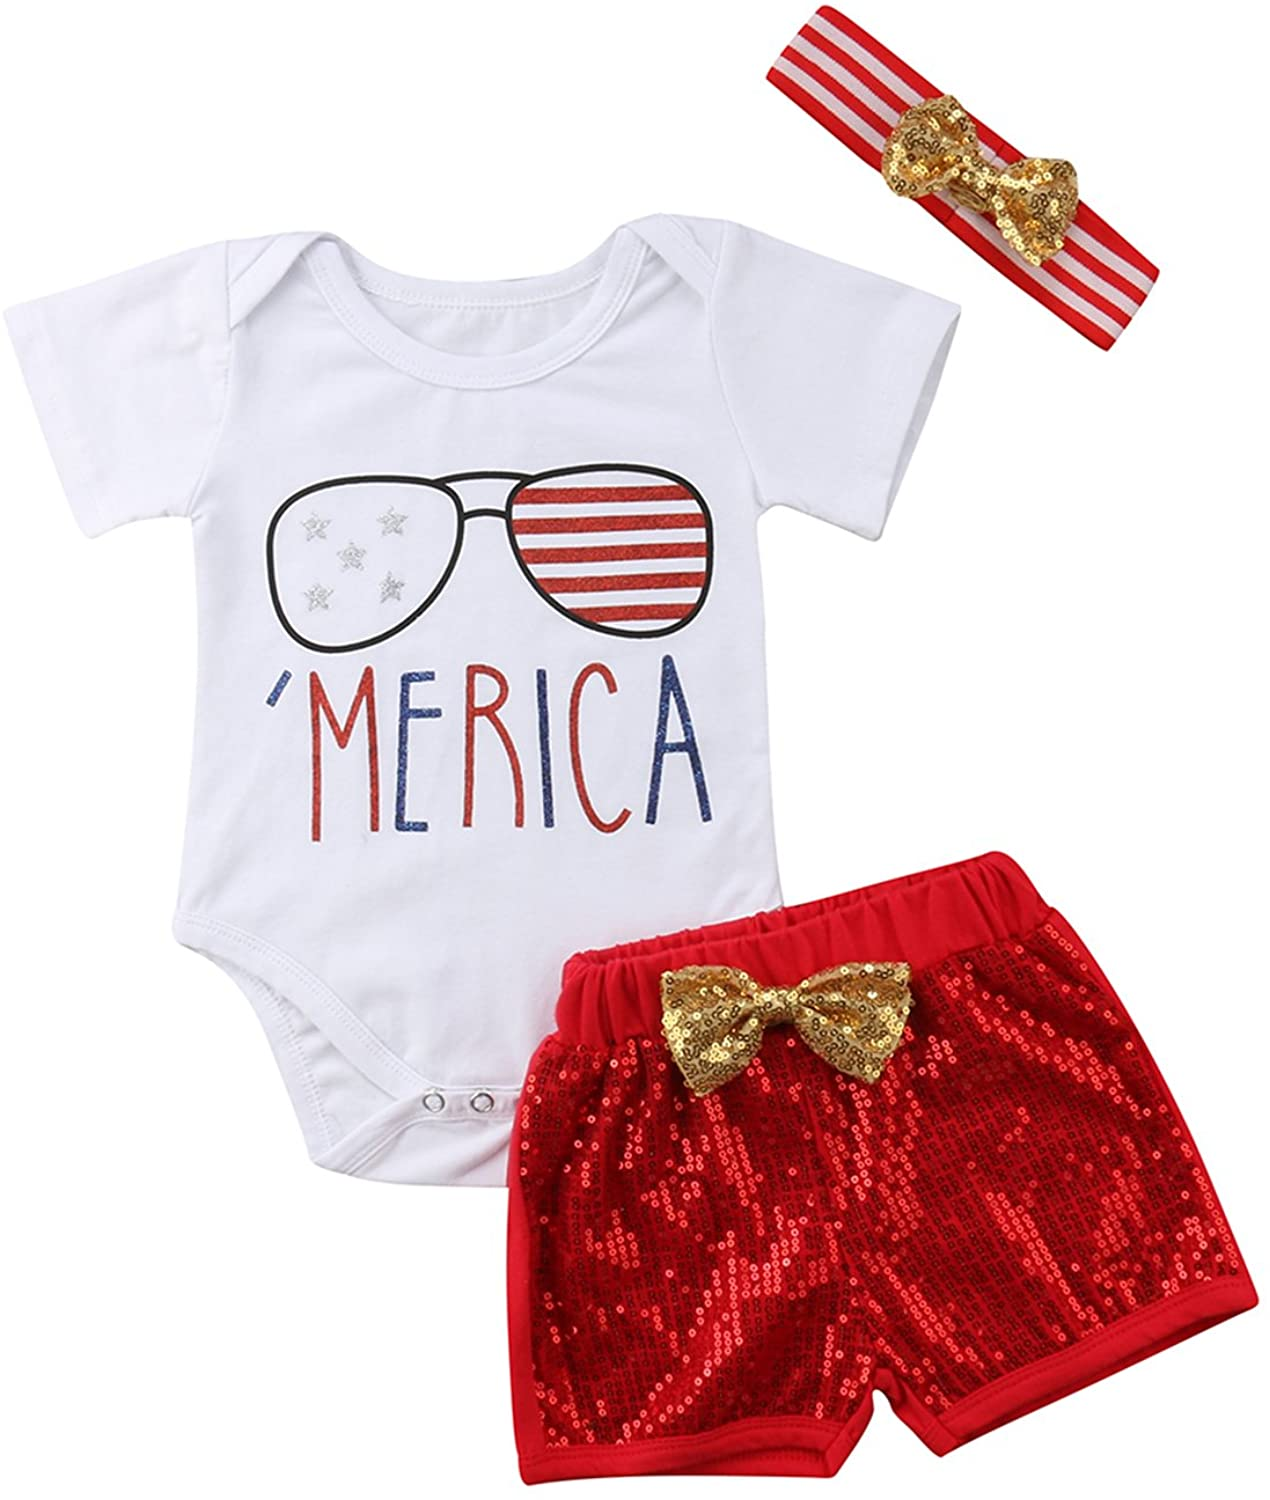 WIFORNT Infant Baby Girls Merica Flag Stripe Star Print Jumpsuit Romper+Sequins Shorts+Headband 3pcs Outfits